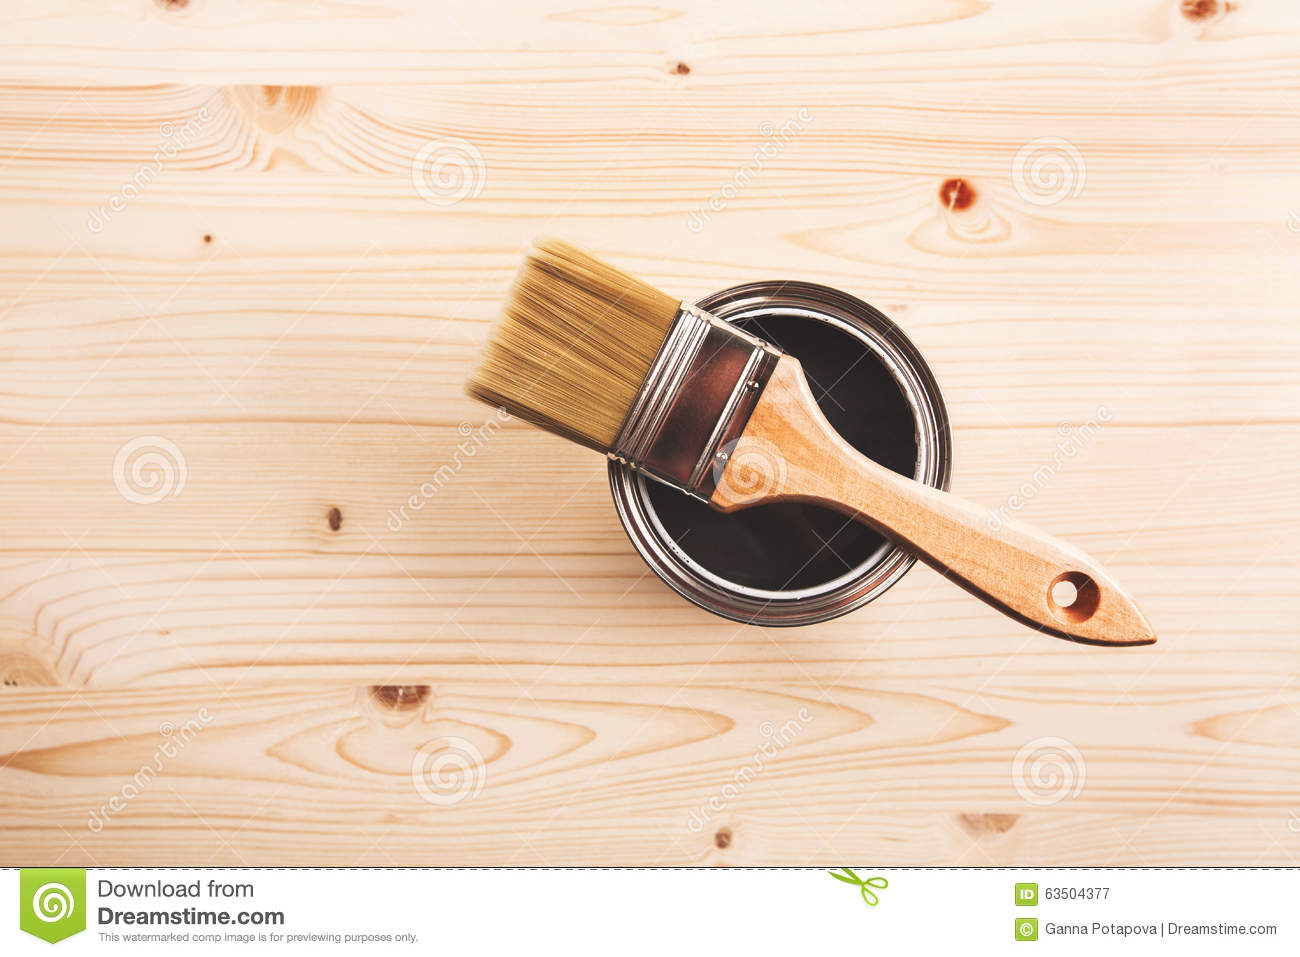 paint brush on can lying on wooden clean table. Top view. Copyspace